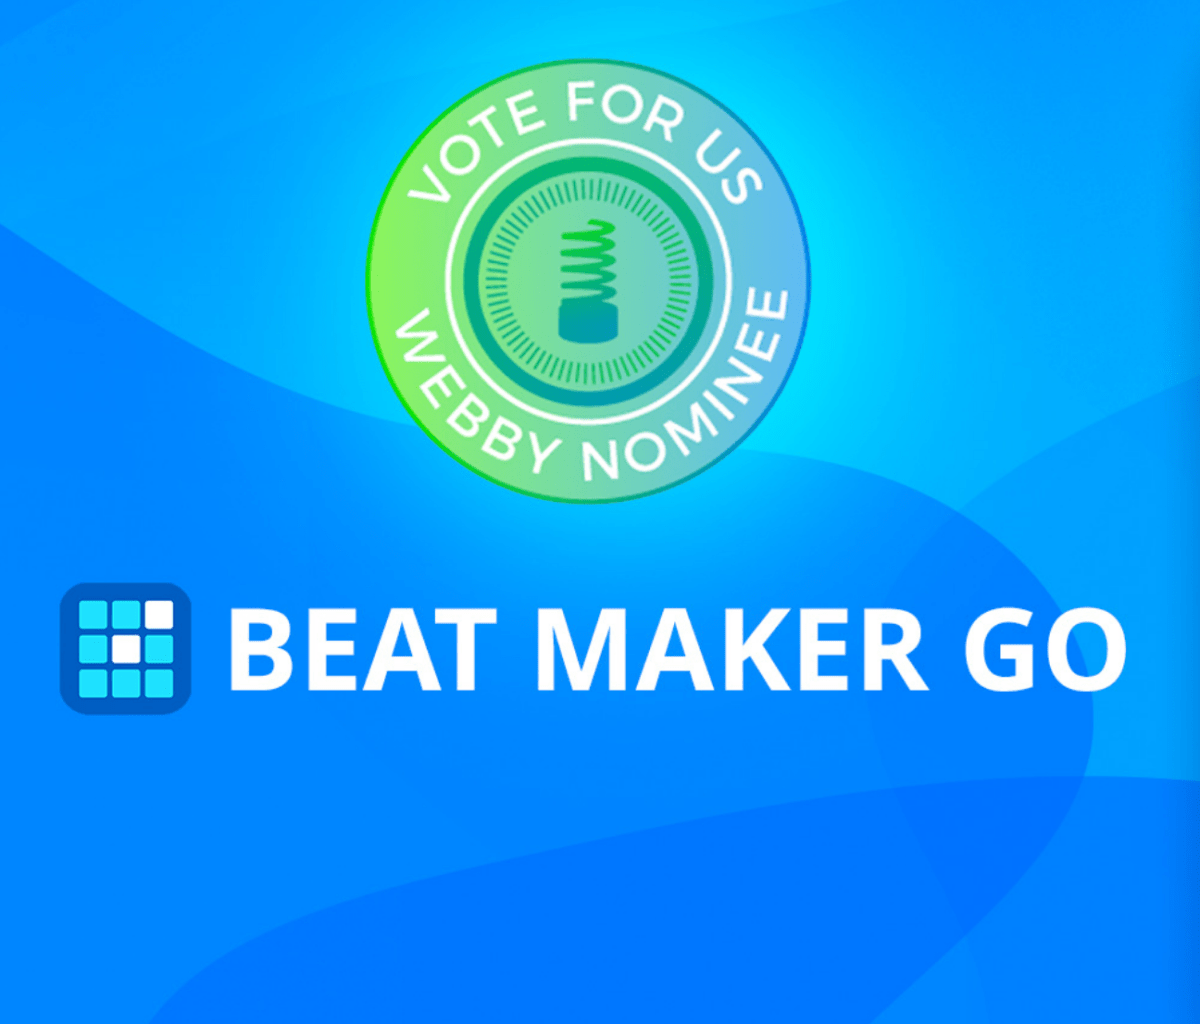 Beat Maker Go Nominated For Best Music App In The 23rd